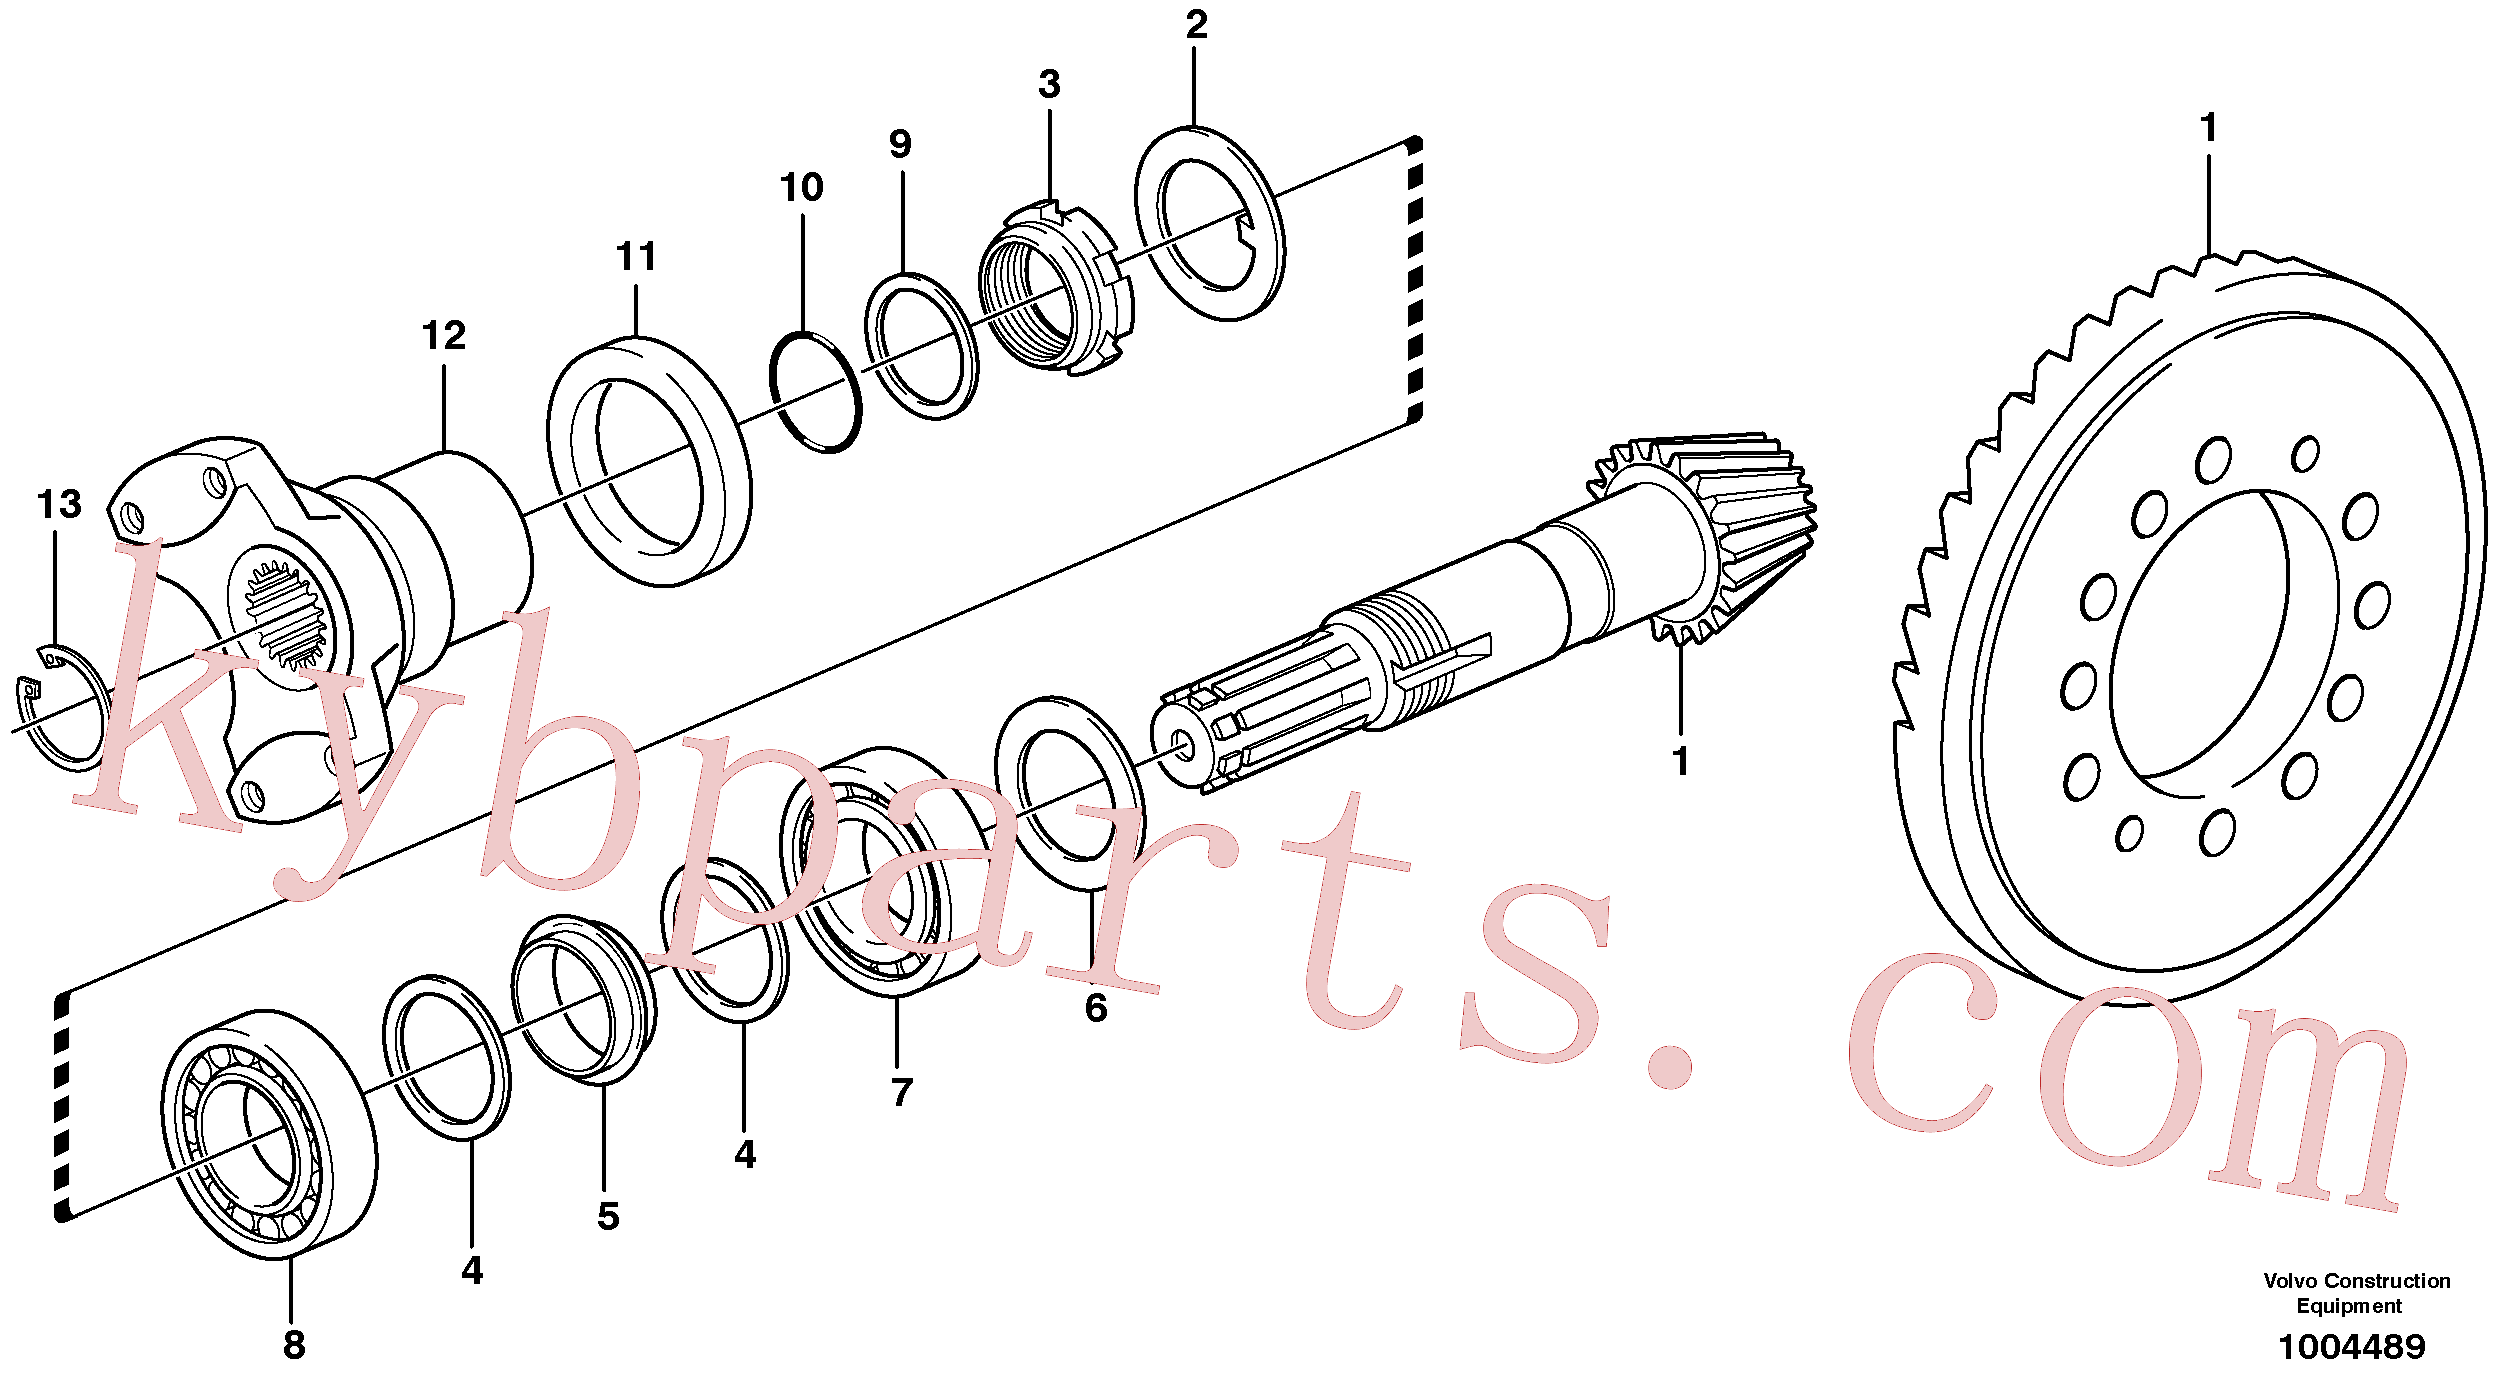 VOE11709288 for Volvo Pinion(1004489 assembly)